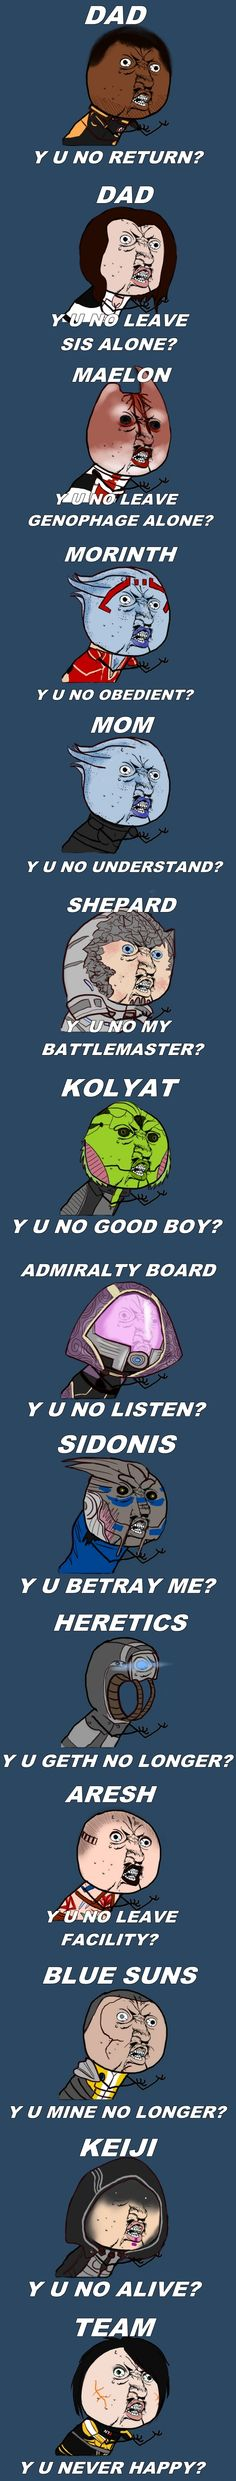 Mass Effect Crew, y u no ever happy?!